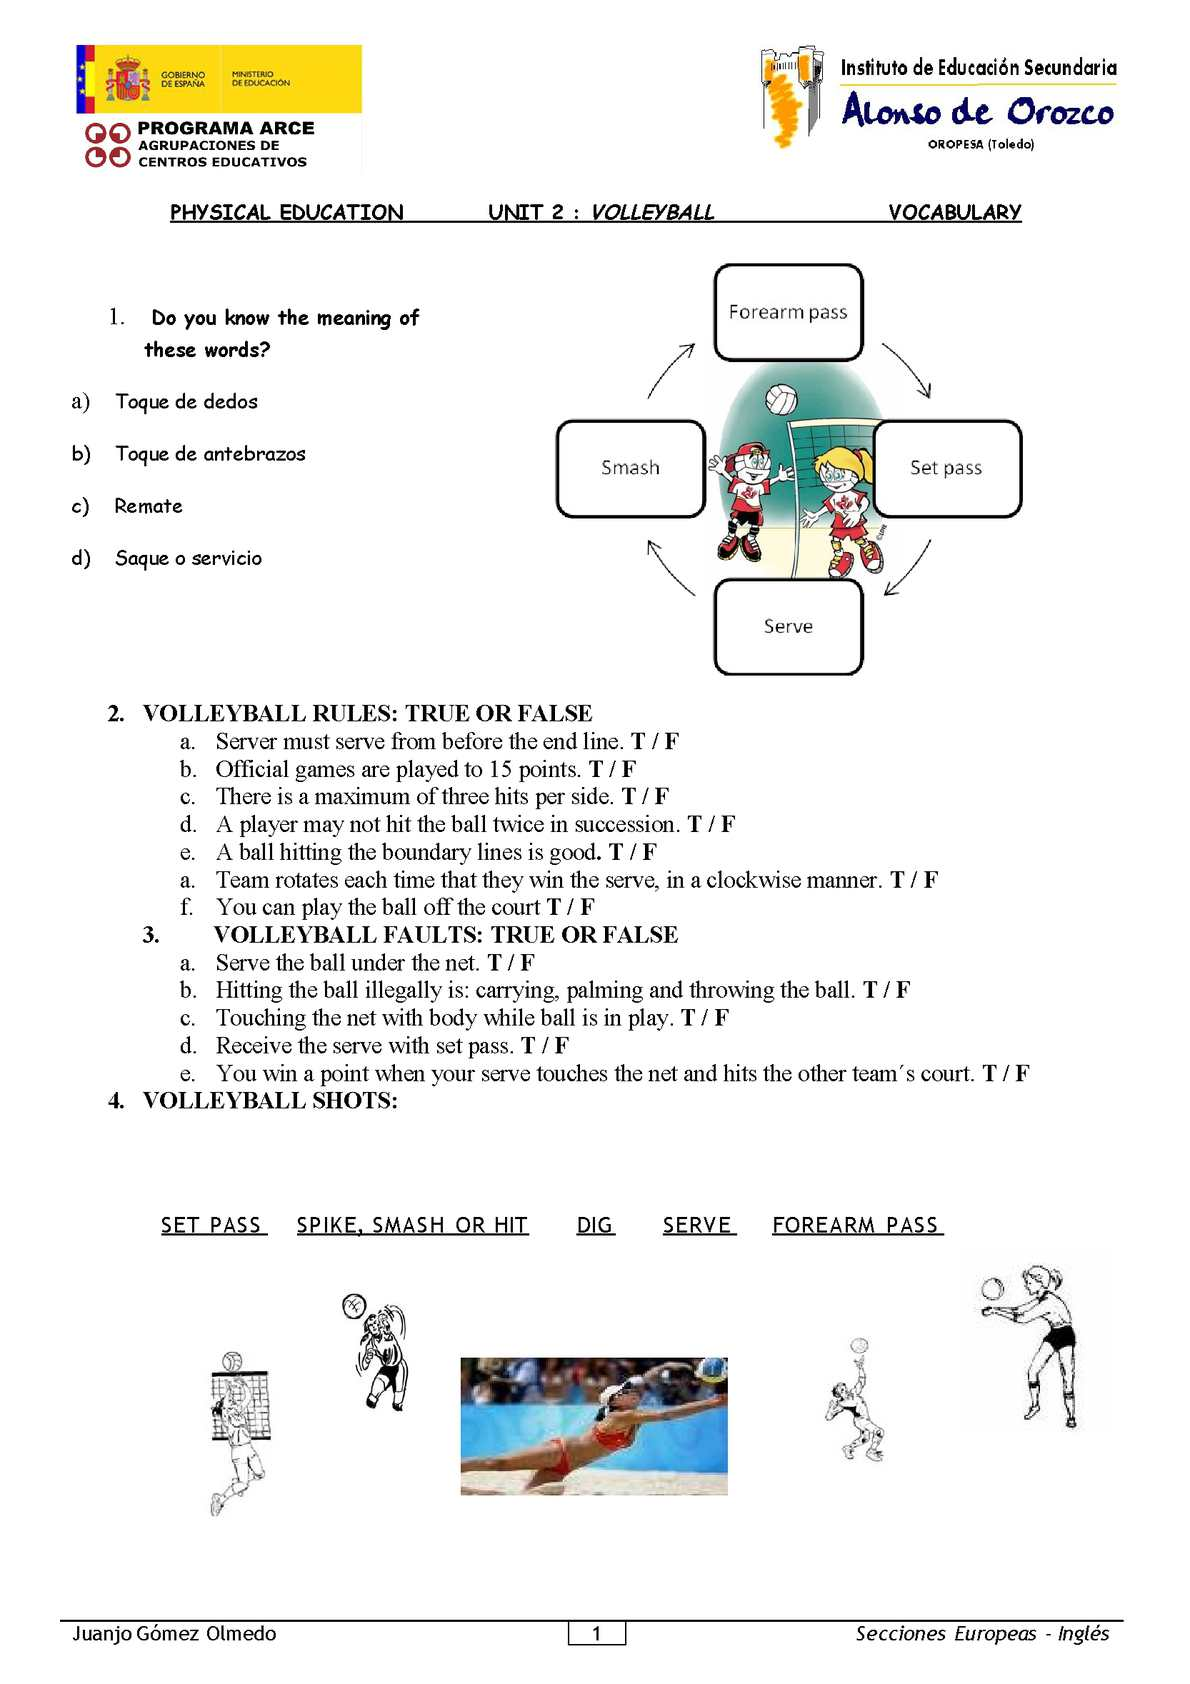 Physical Education-2º ESO-Volleyball vocabulary